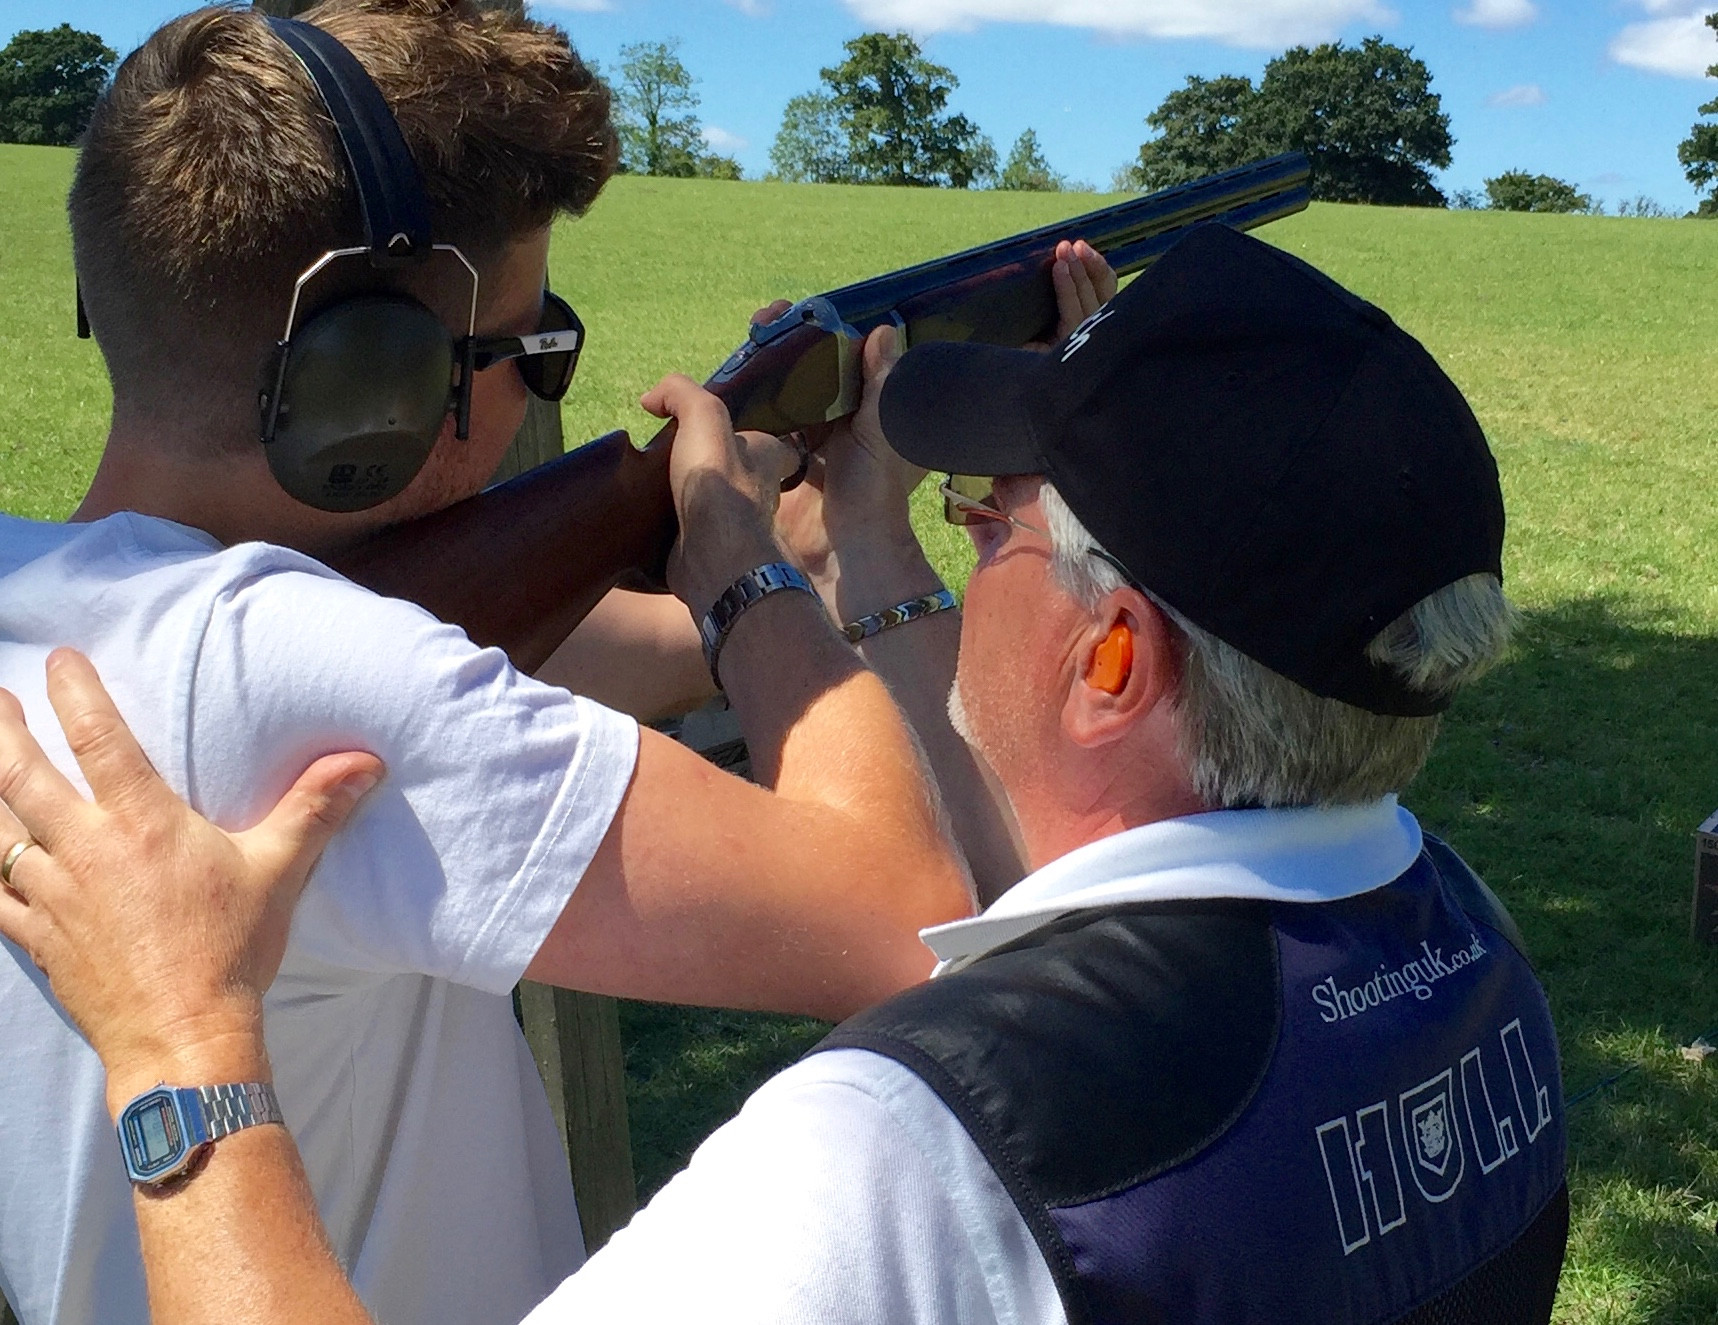 Clay Shooting Experience for 1